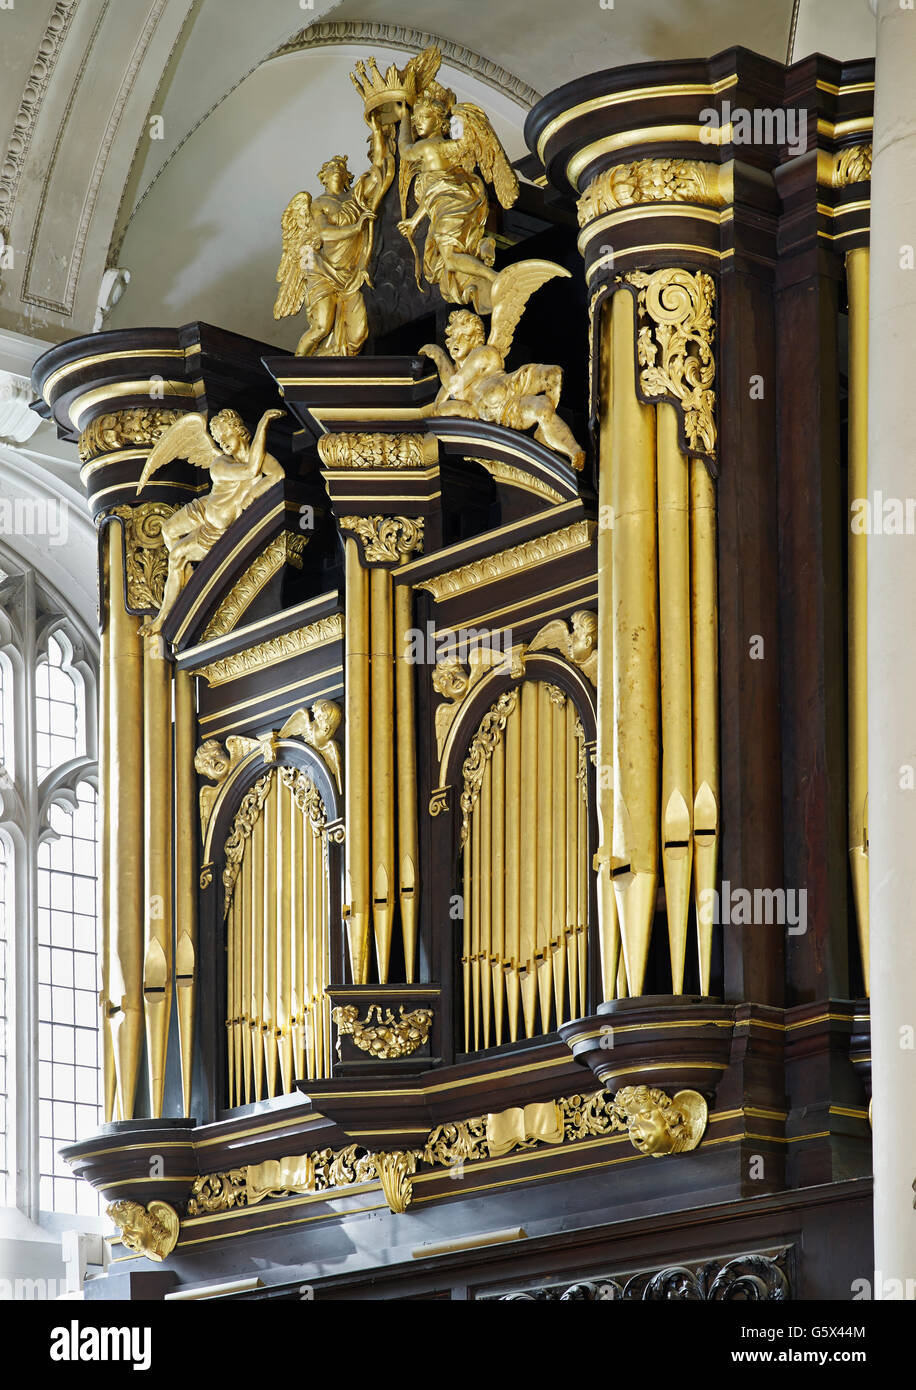 St Sepulchre, church in the City of London; the organ - Stock Image